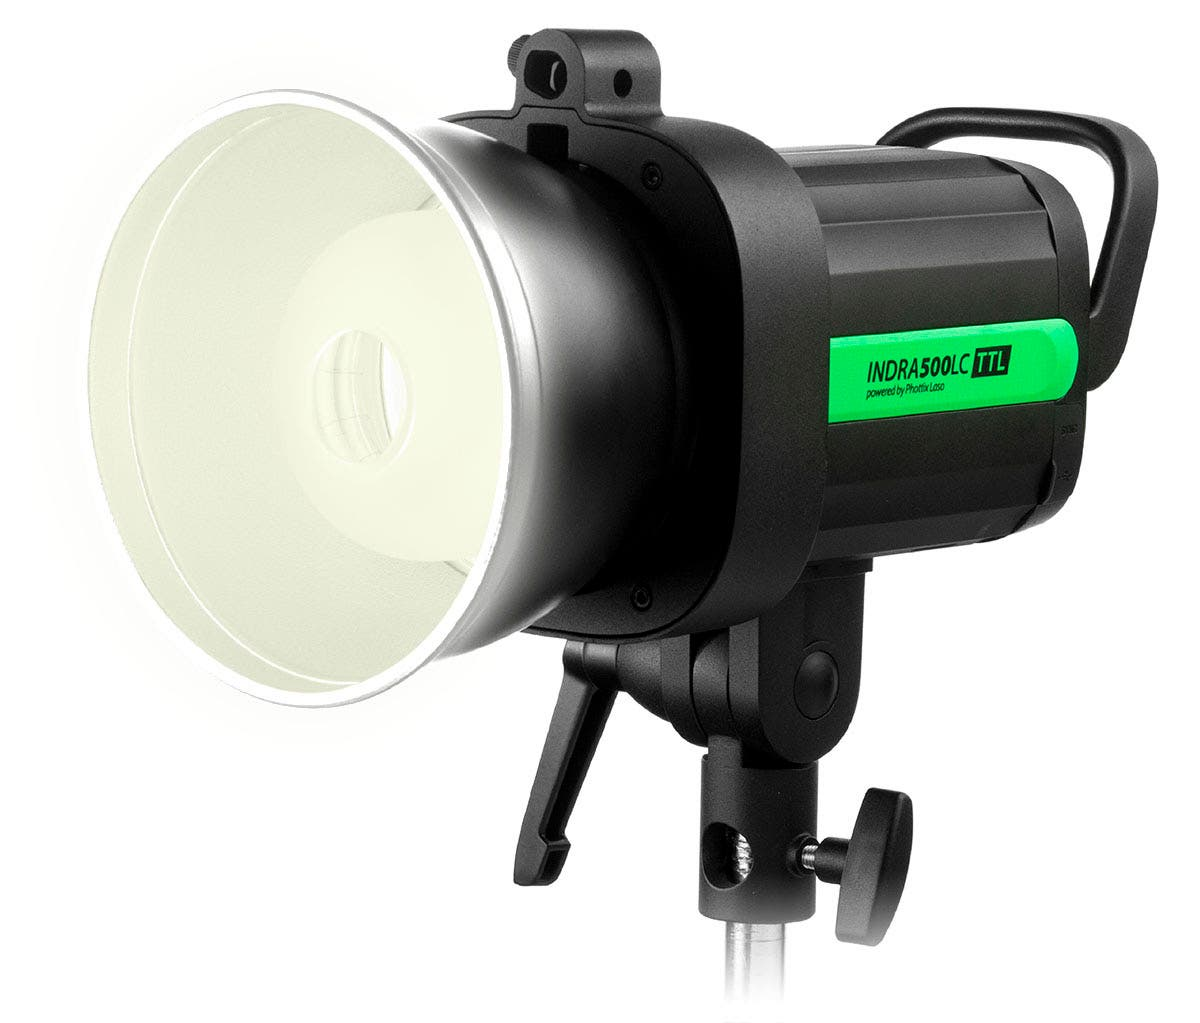 Phottix Releases A 500W TTL Studio Light Compatible with the Canon RT System